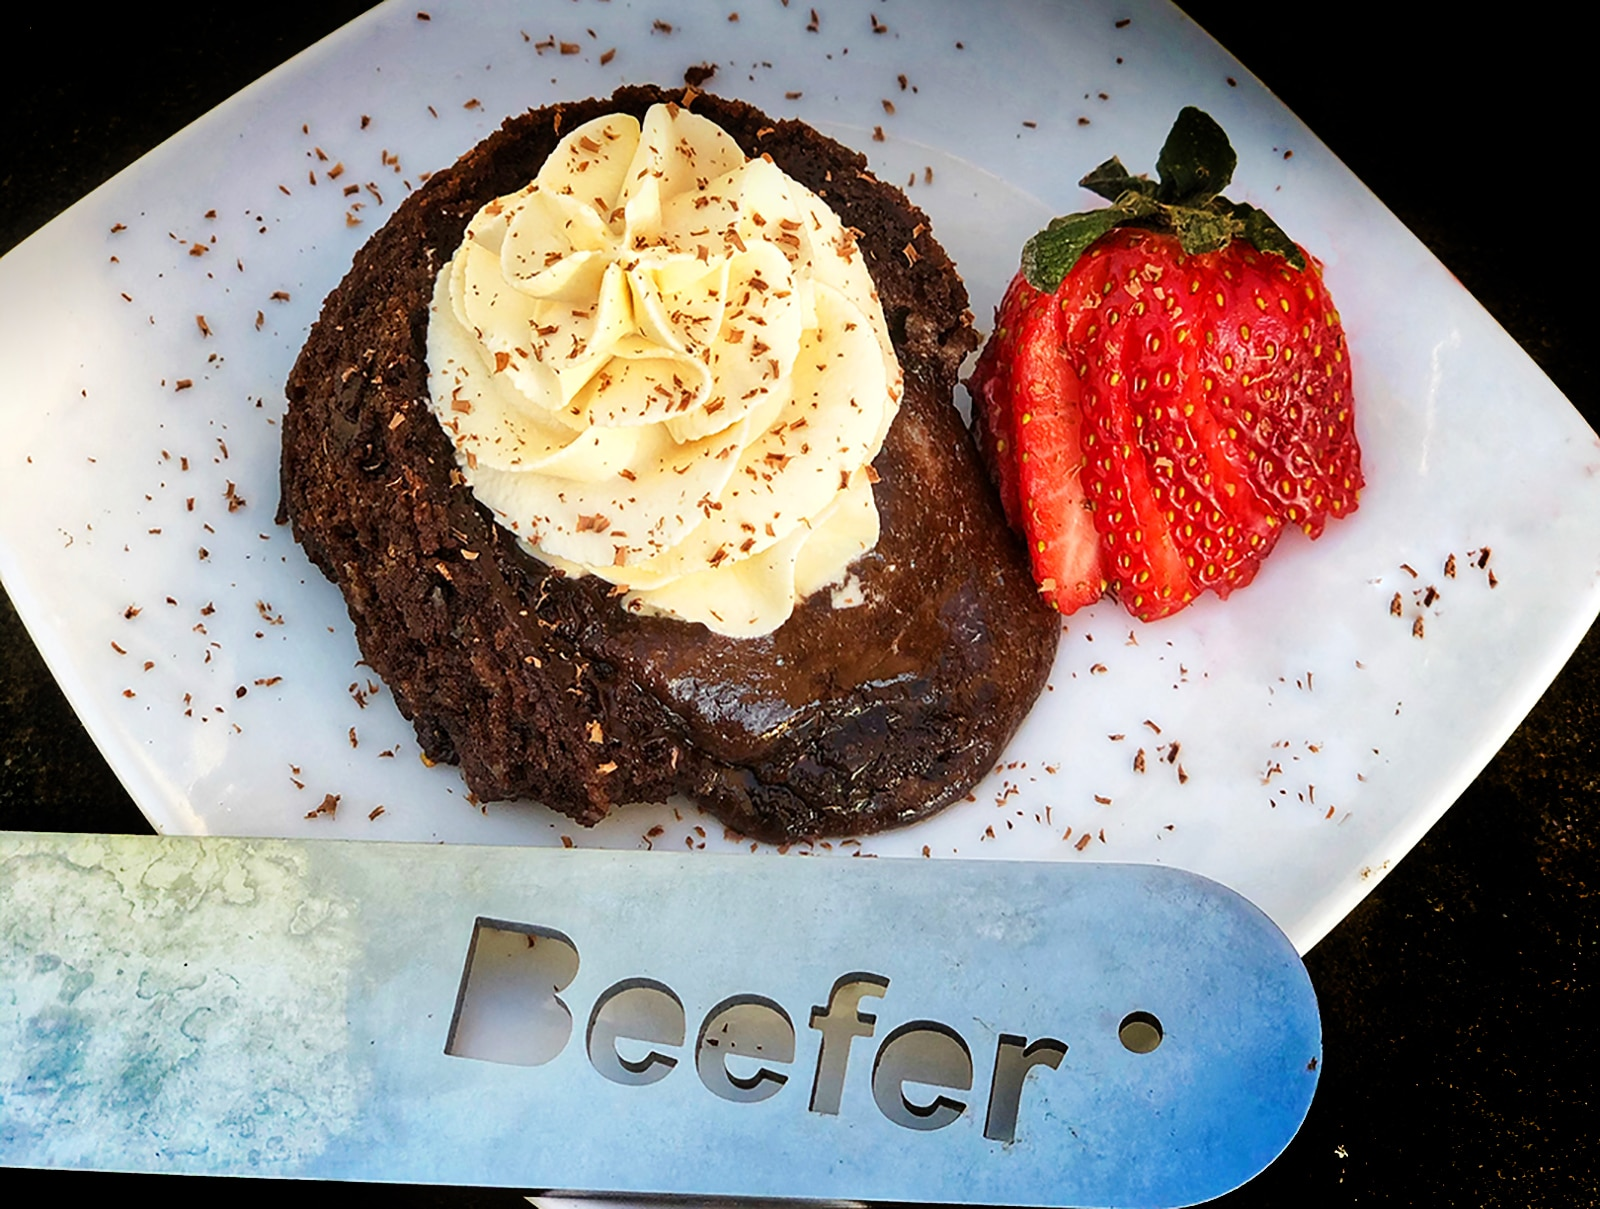 Chocolate Lava Cakes - made with a Beefer